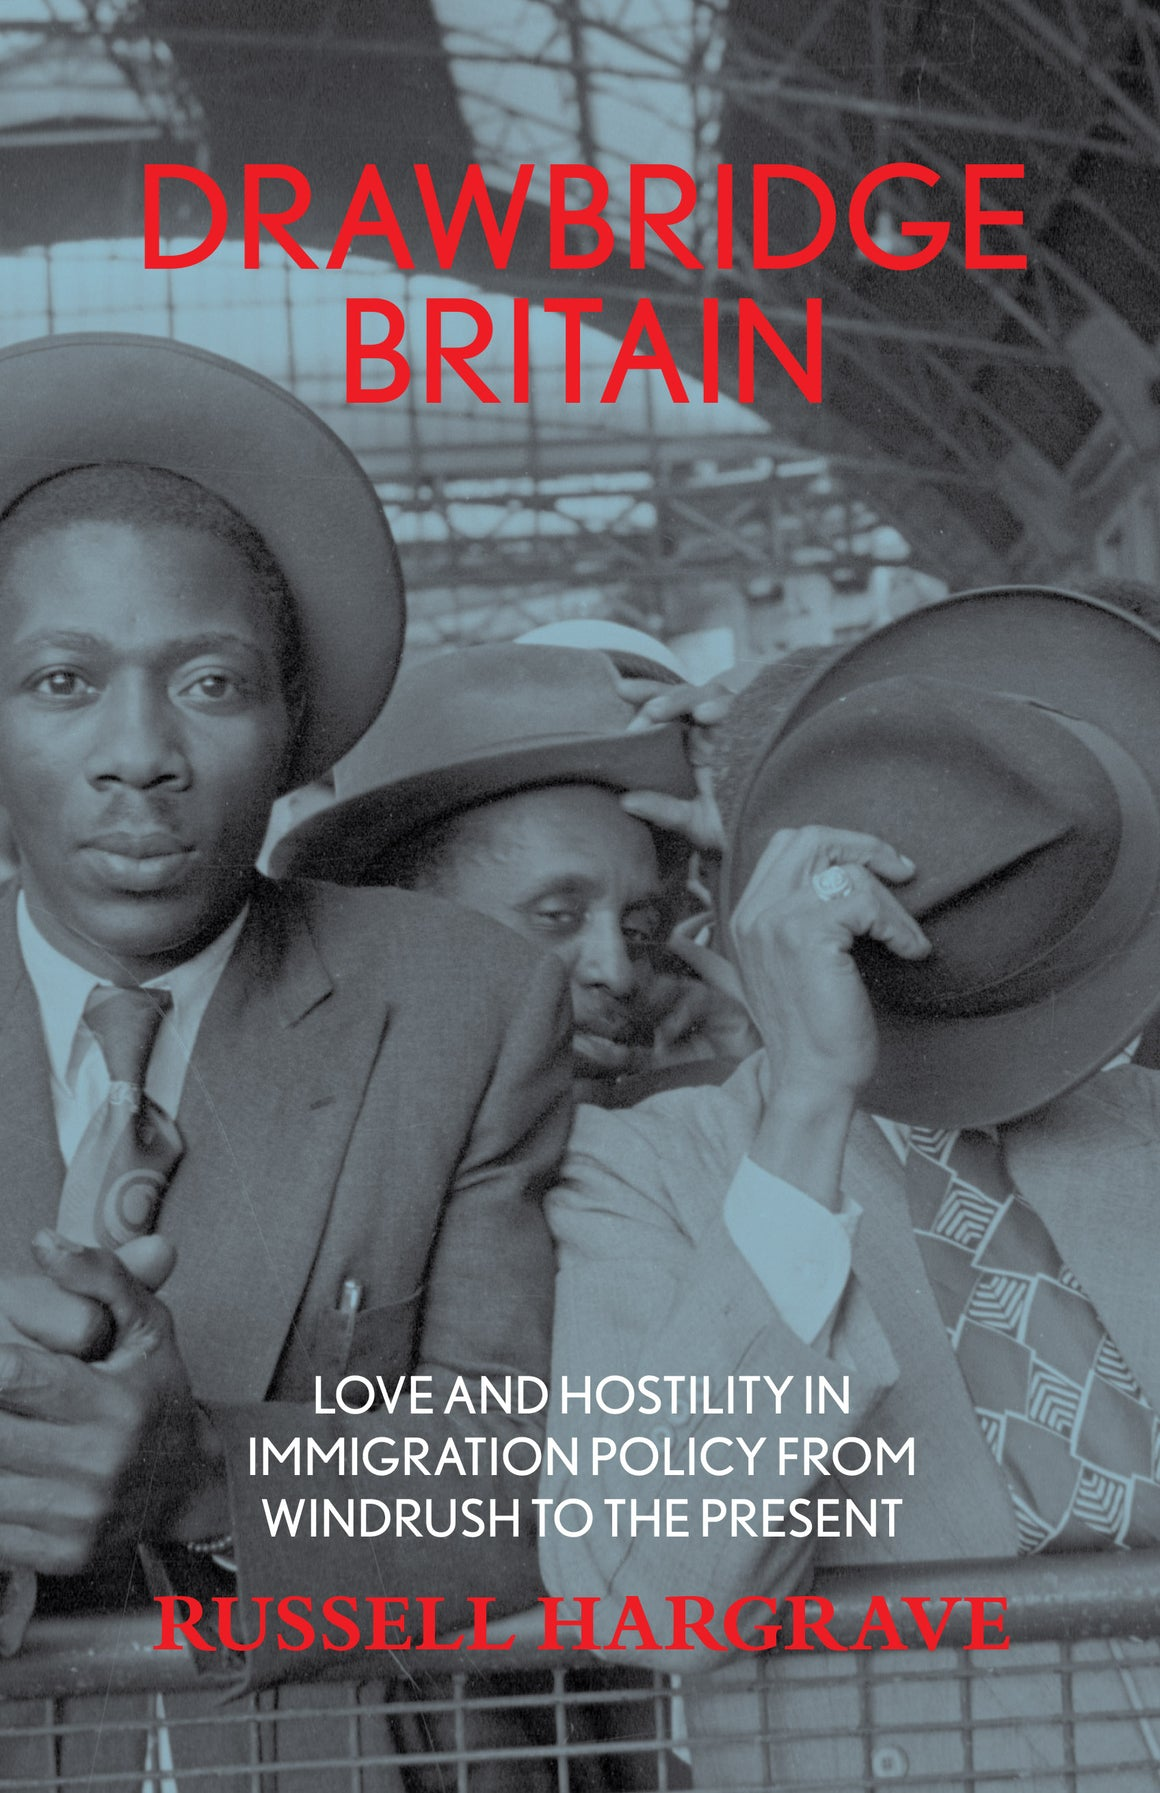 DRAWBRIDGE BRITAIN: Love and Hostility in Immigration Policy from Windrush to the Present